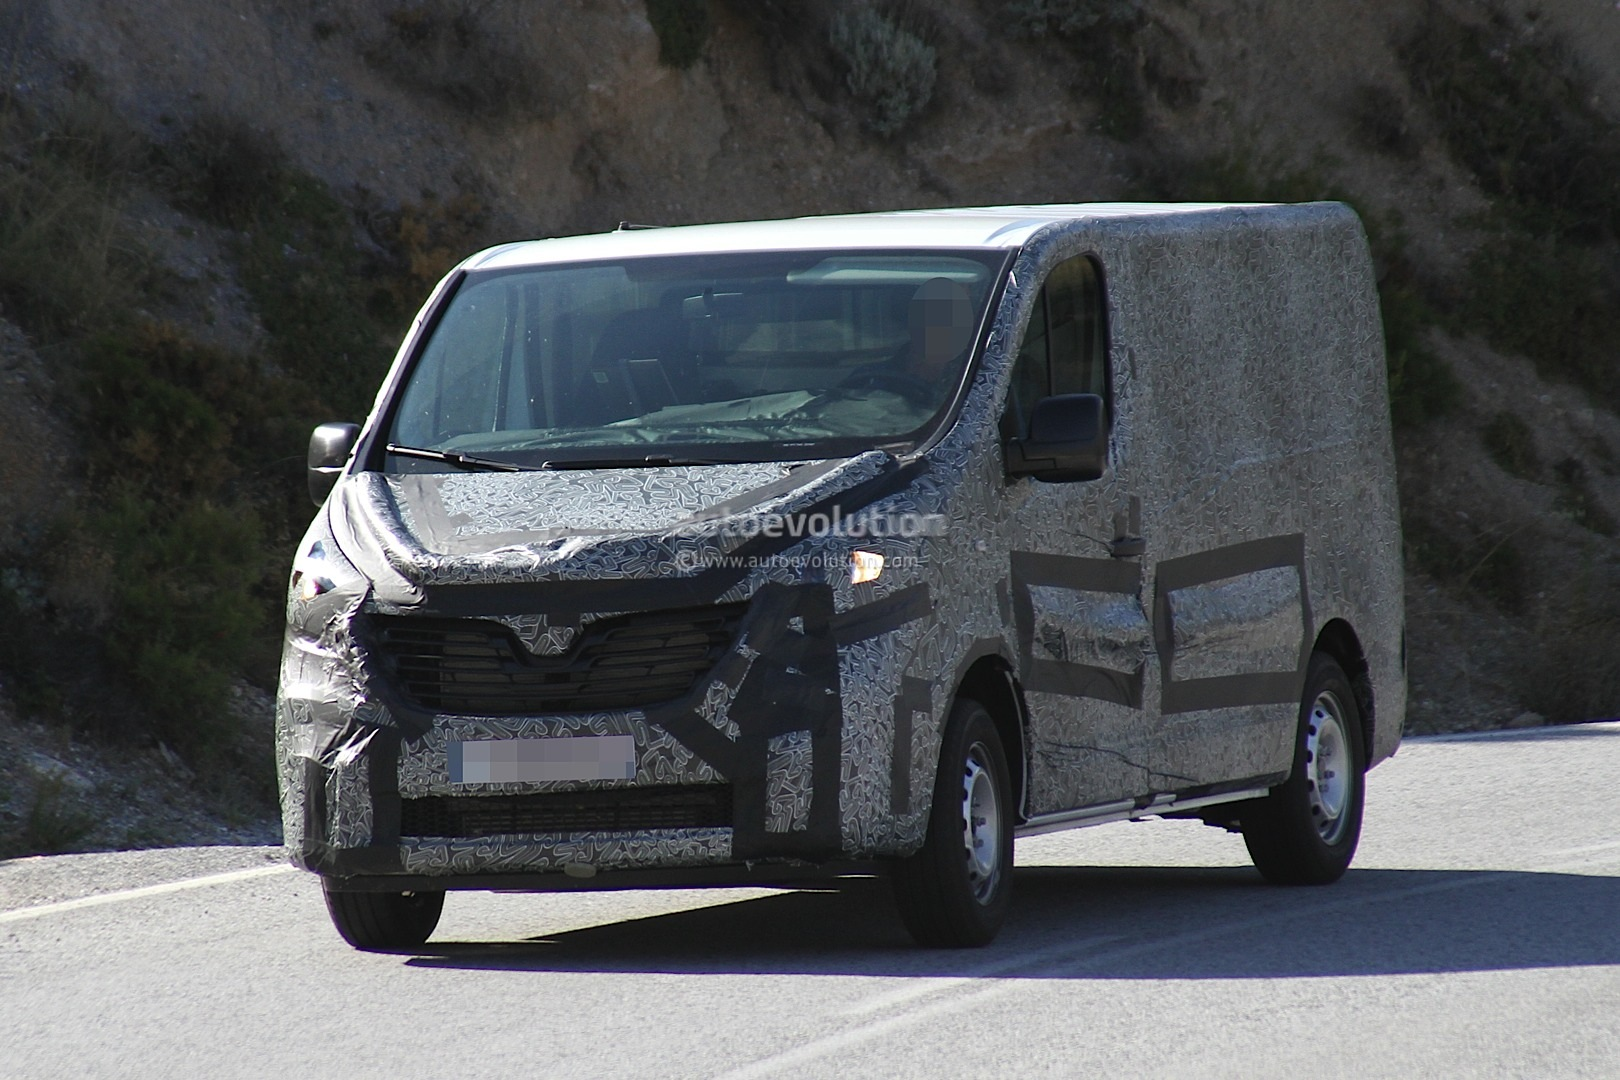 renault releases sketch of new trafic van for 2014